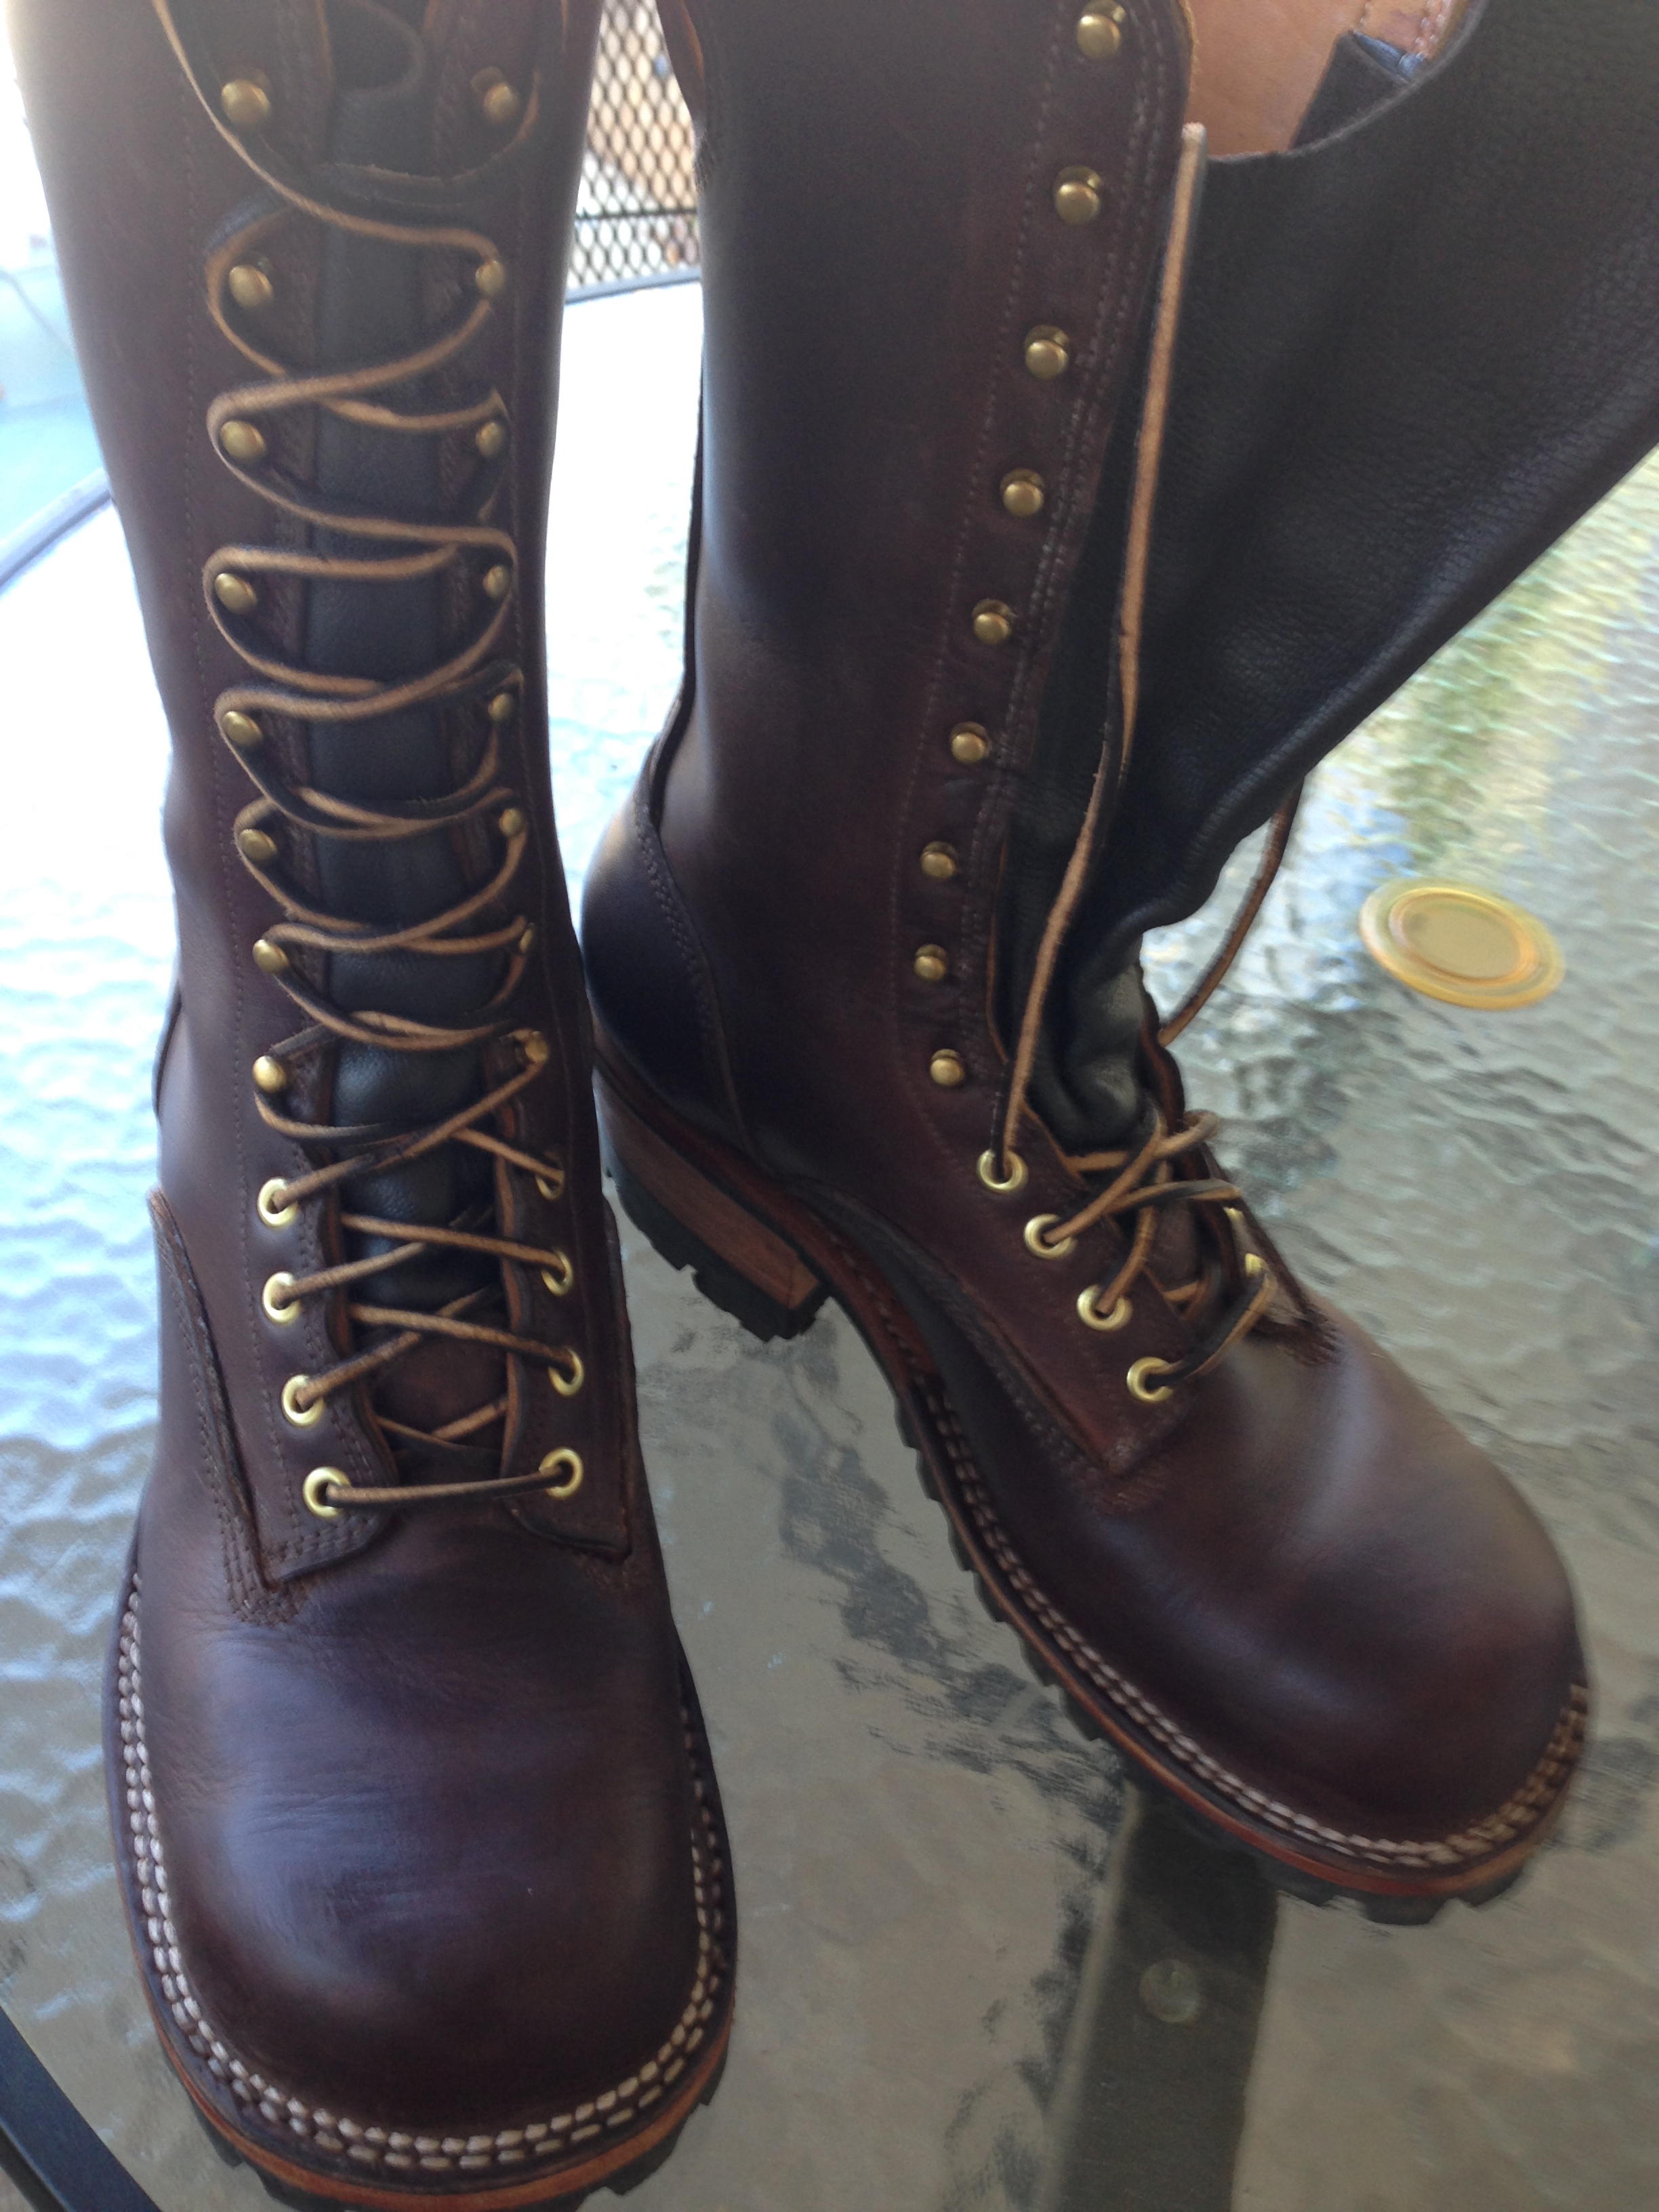 Boots – my experience